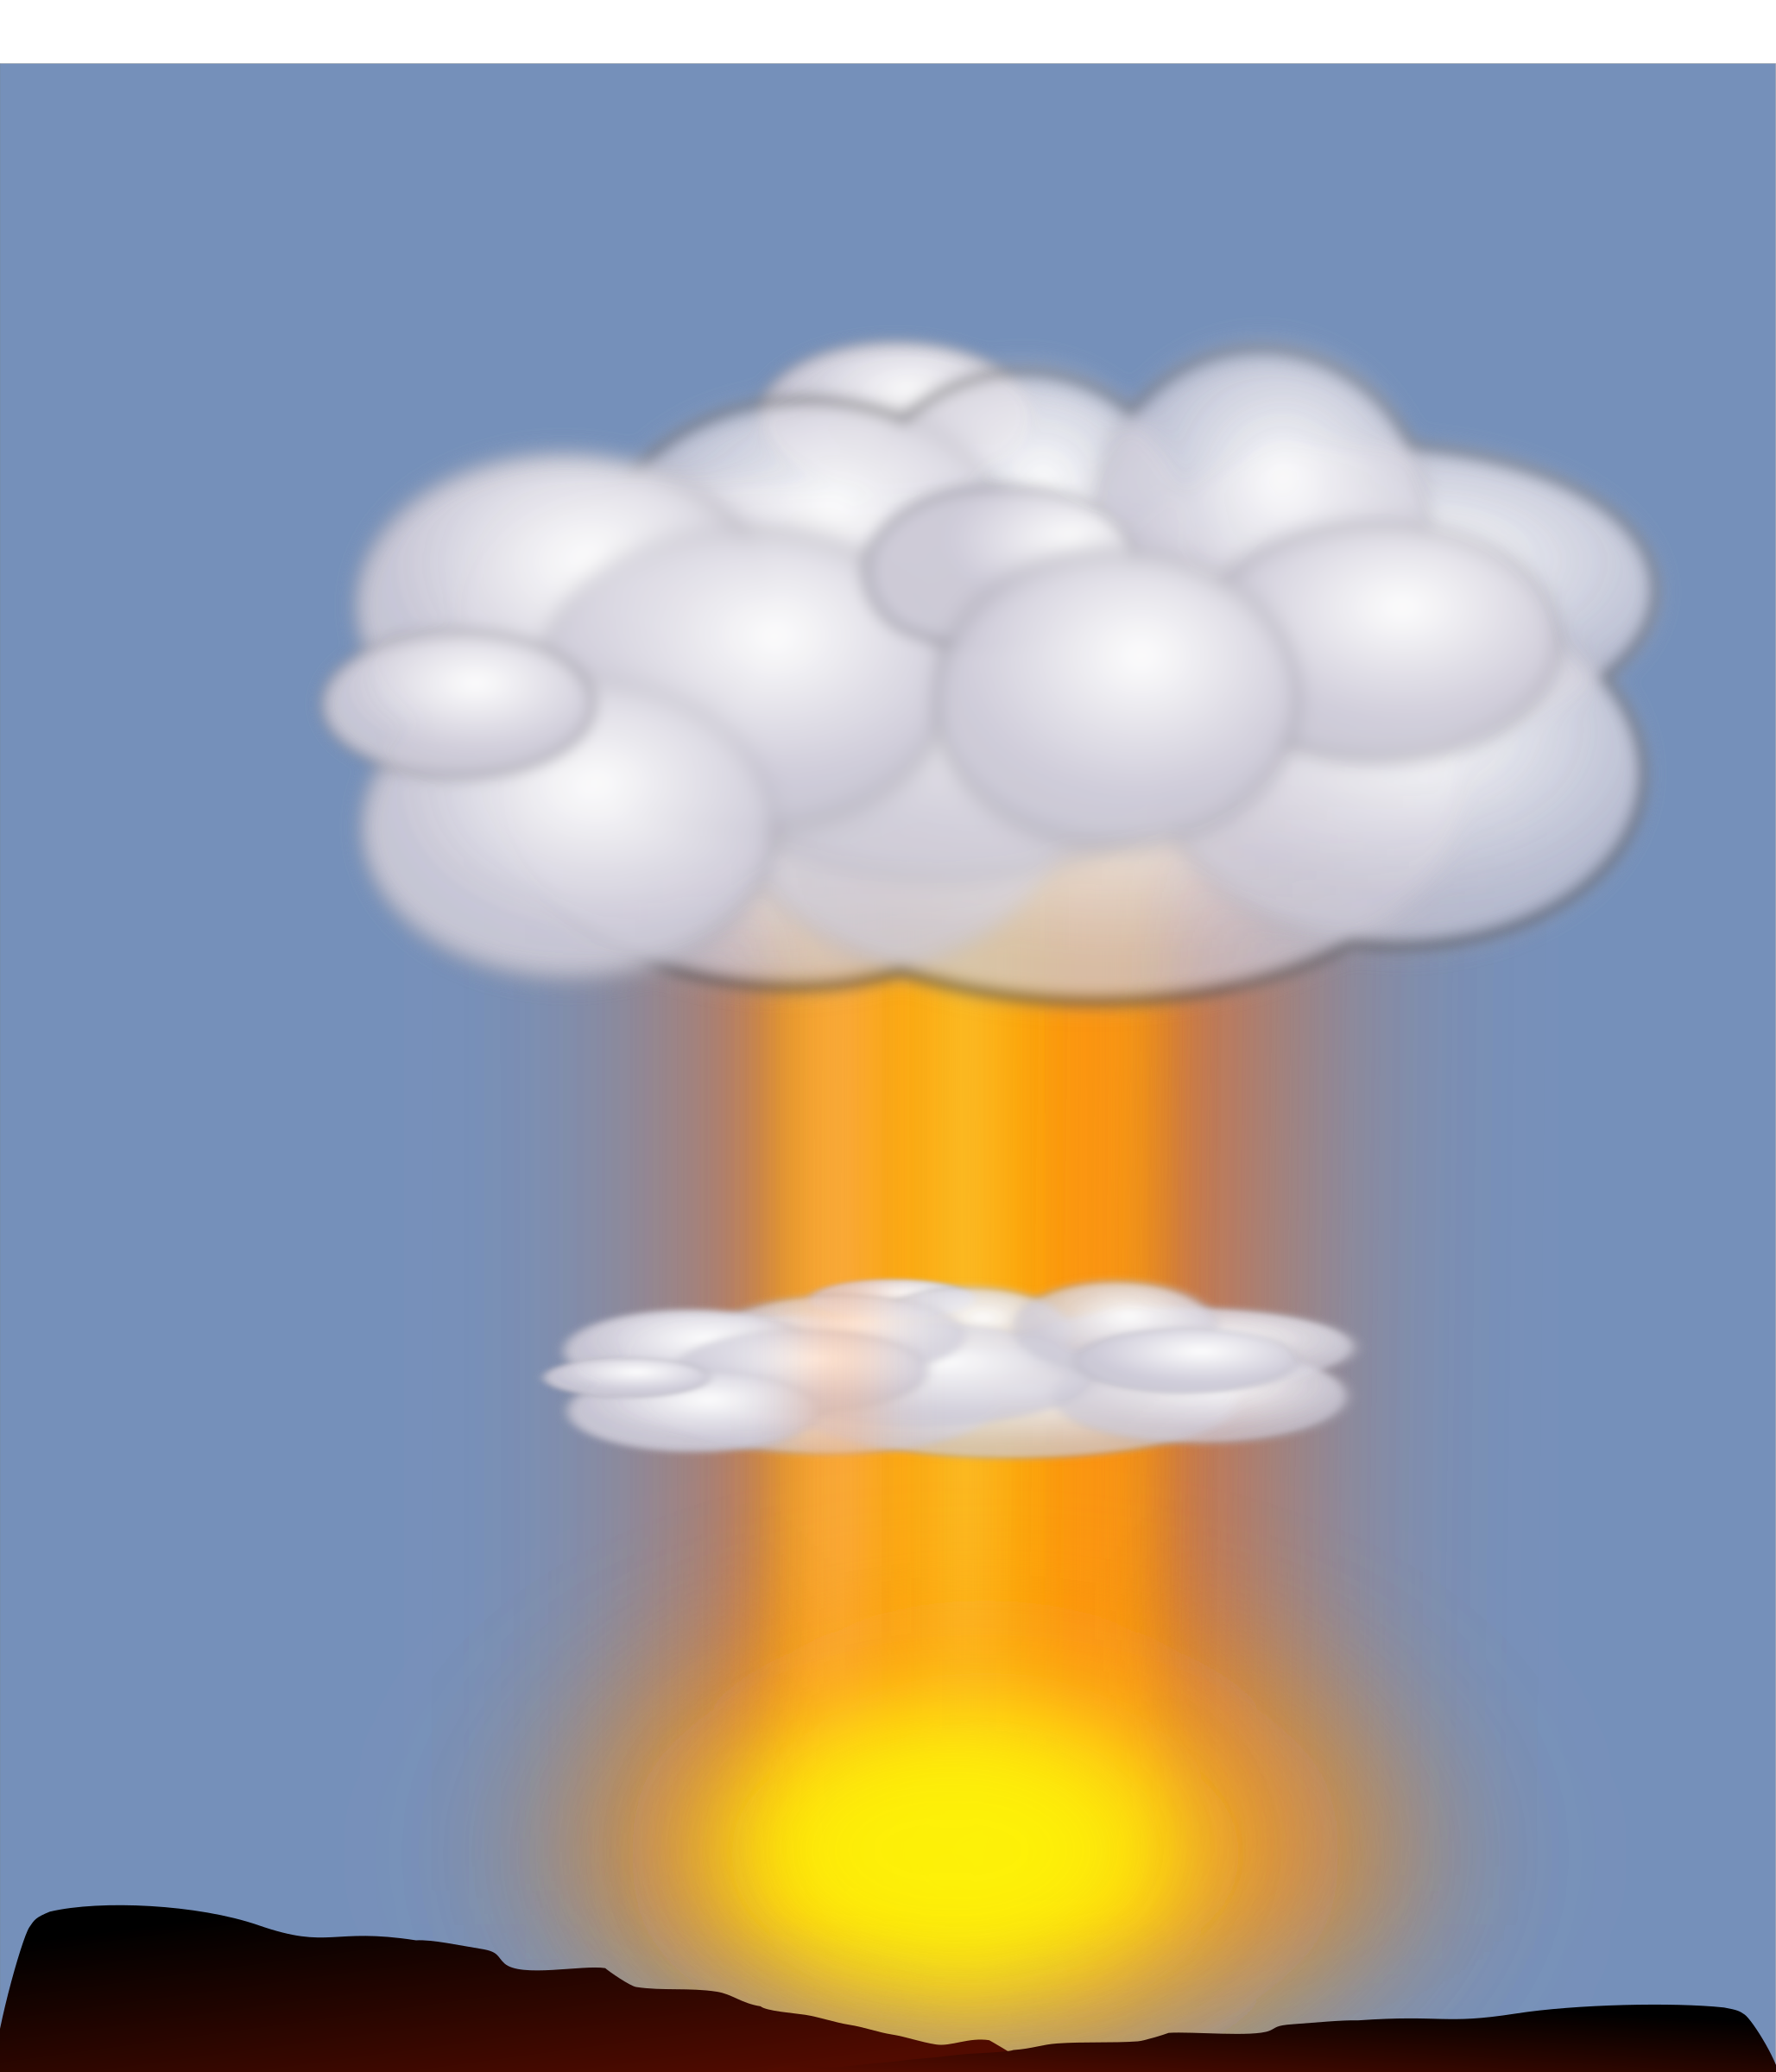 Big image png. Nuke clipart nuclear explosion